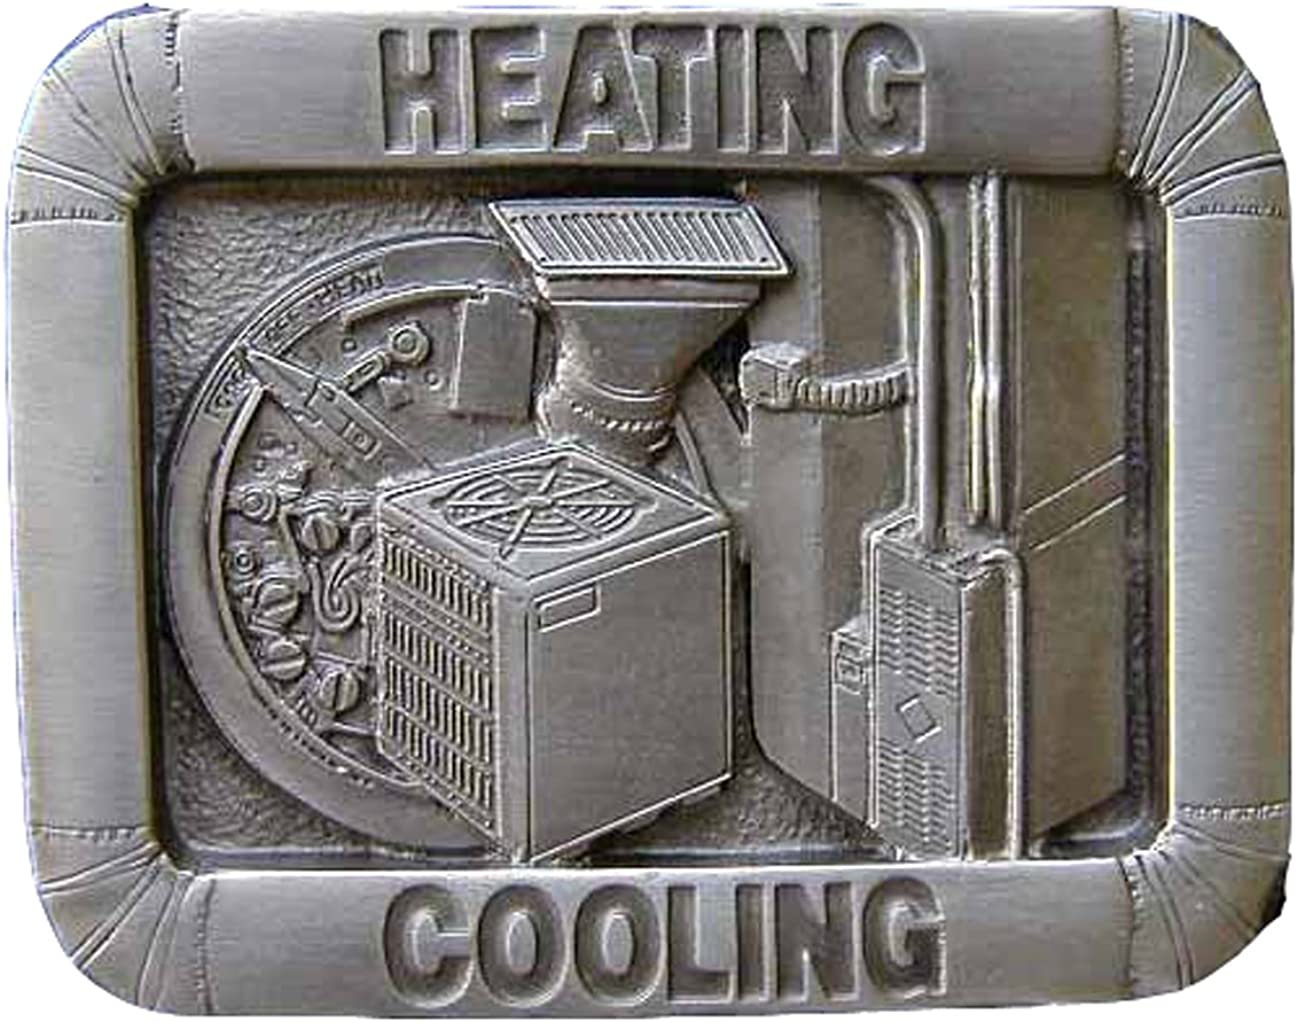 Heating & Cooling Novelty Belt Buckle